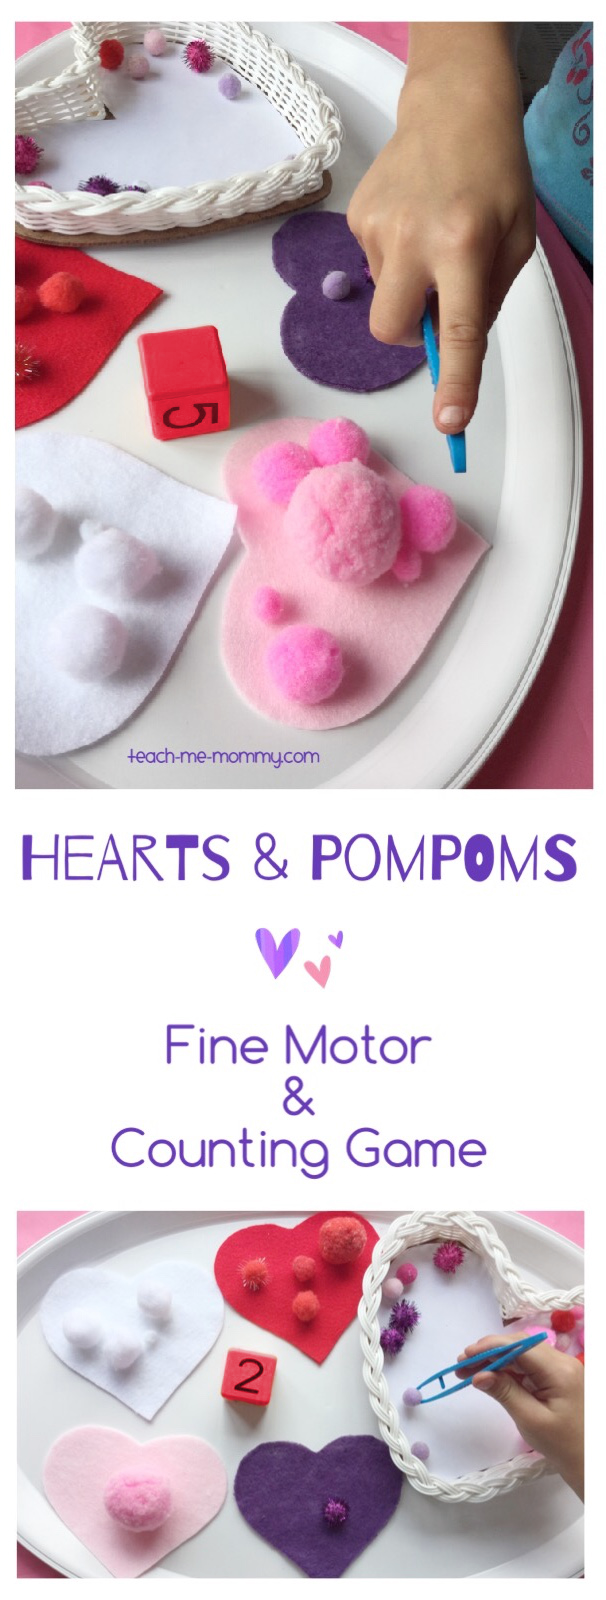 fine motor & counting game